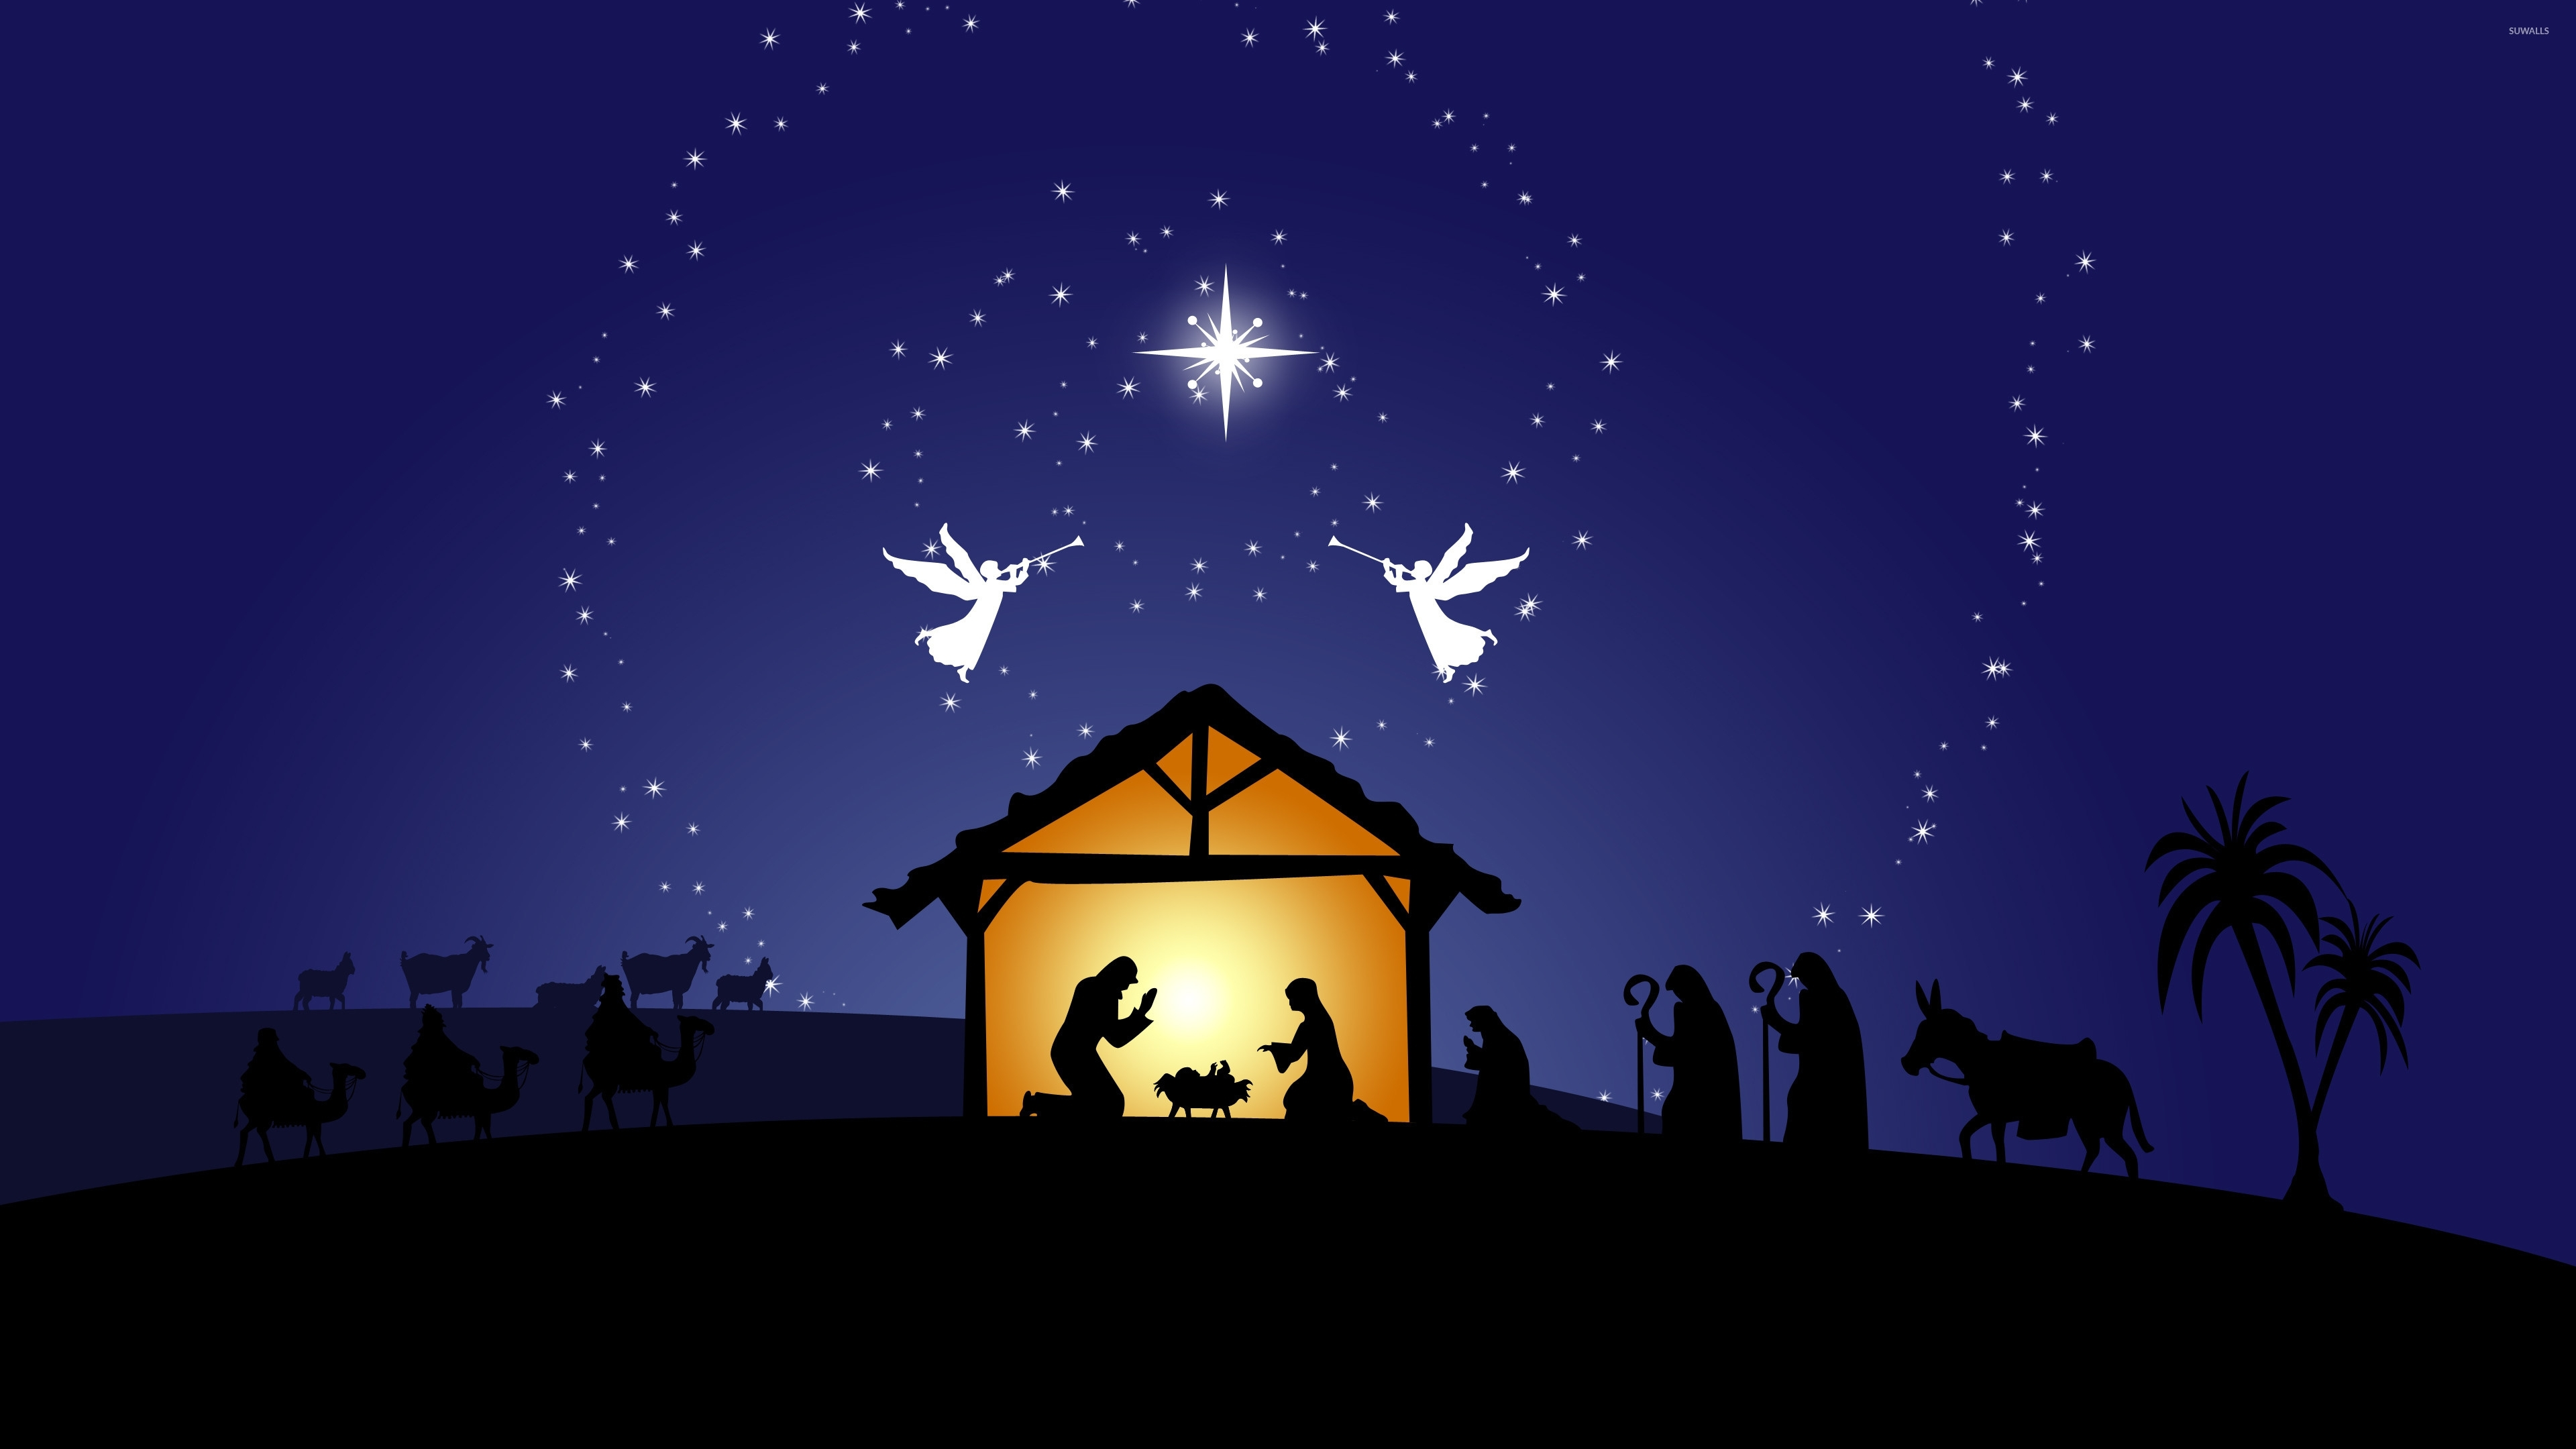 nativity scene wallpaper (44+ images)